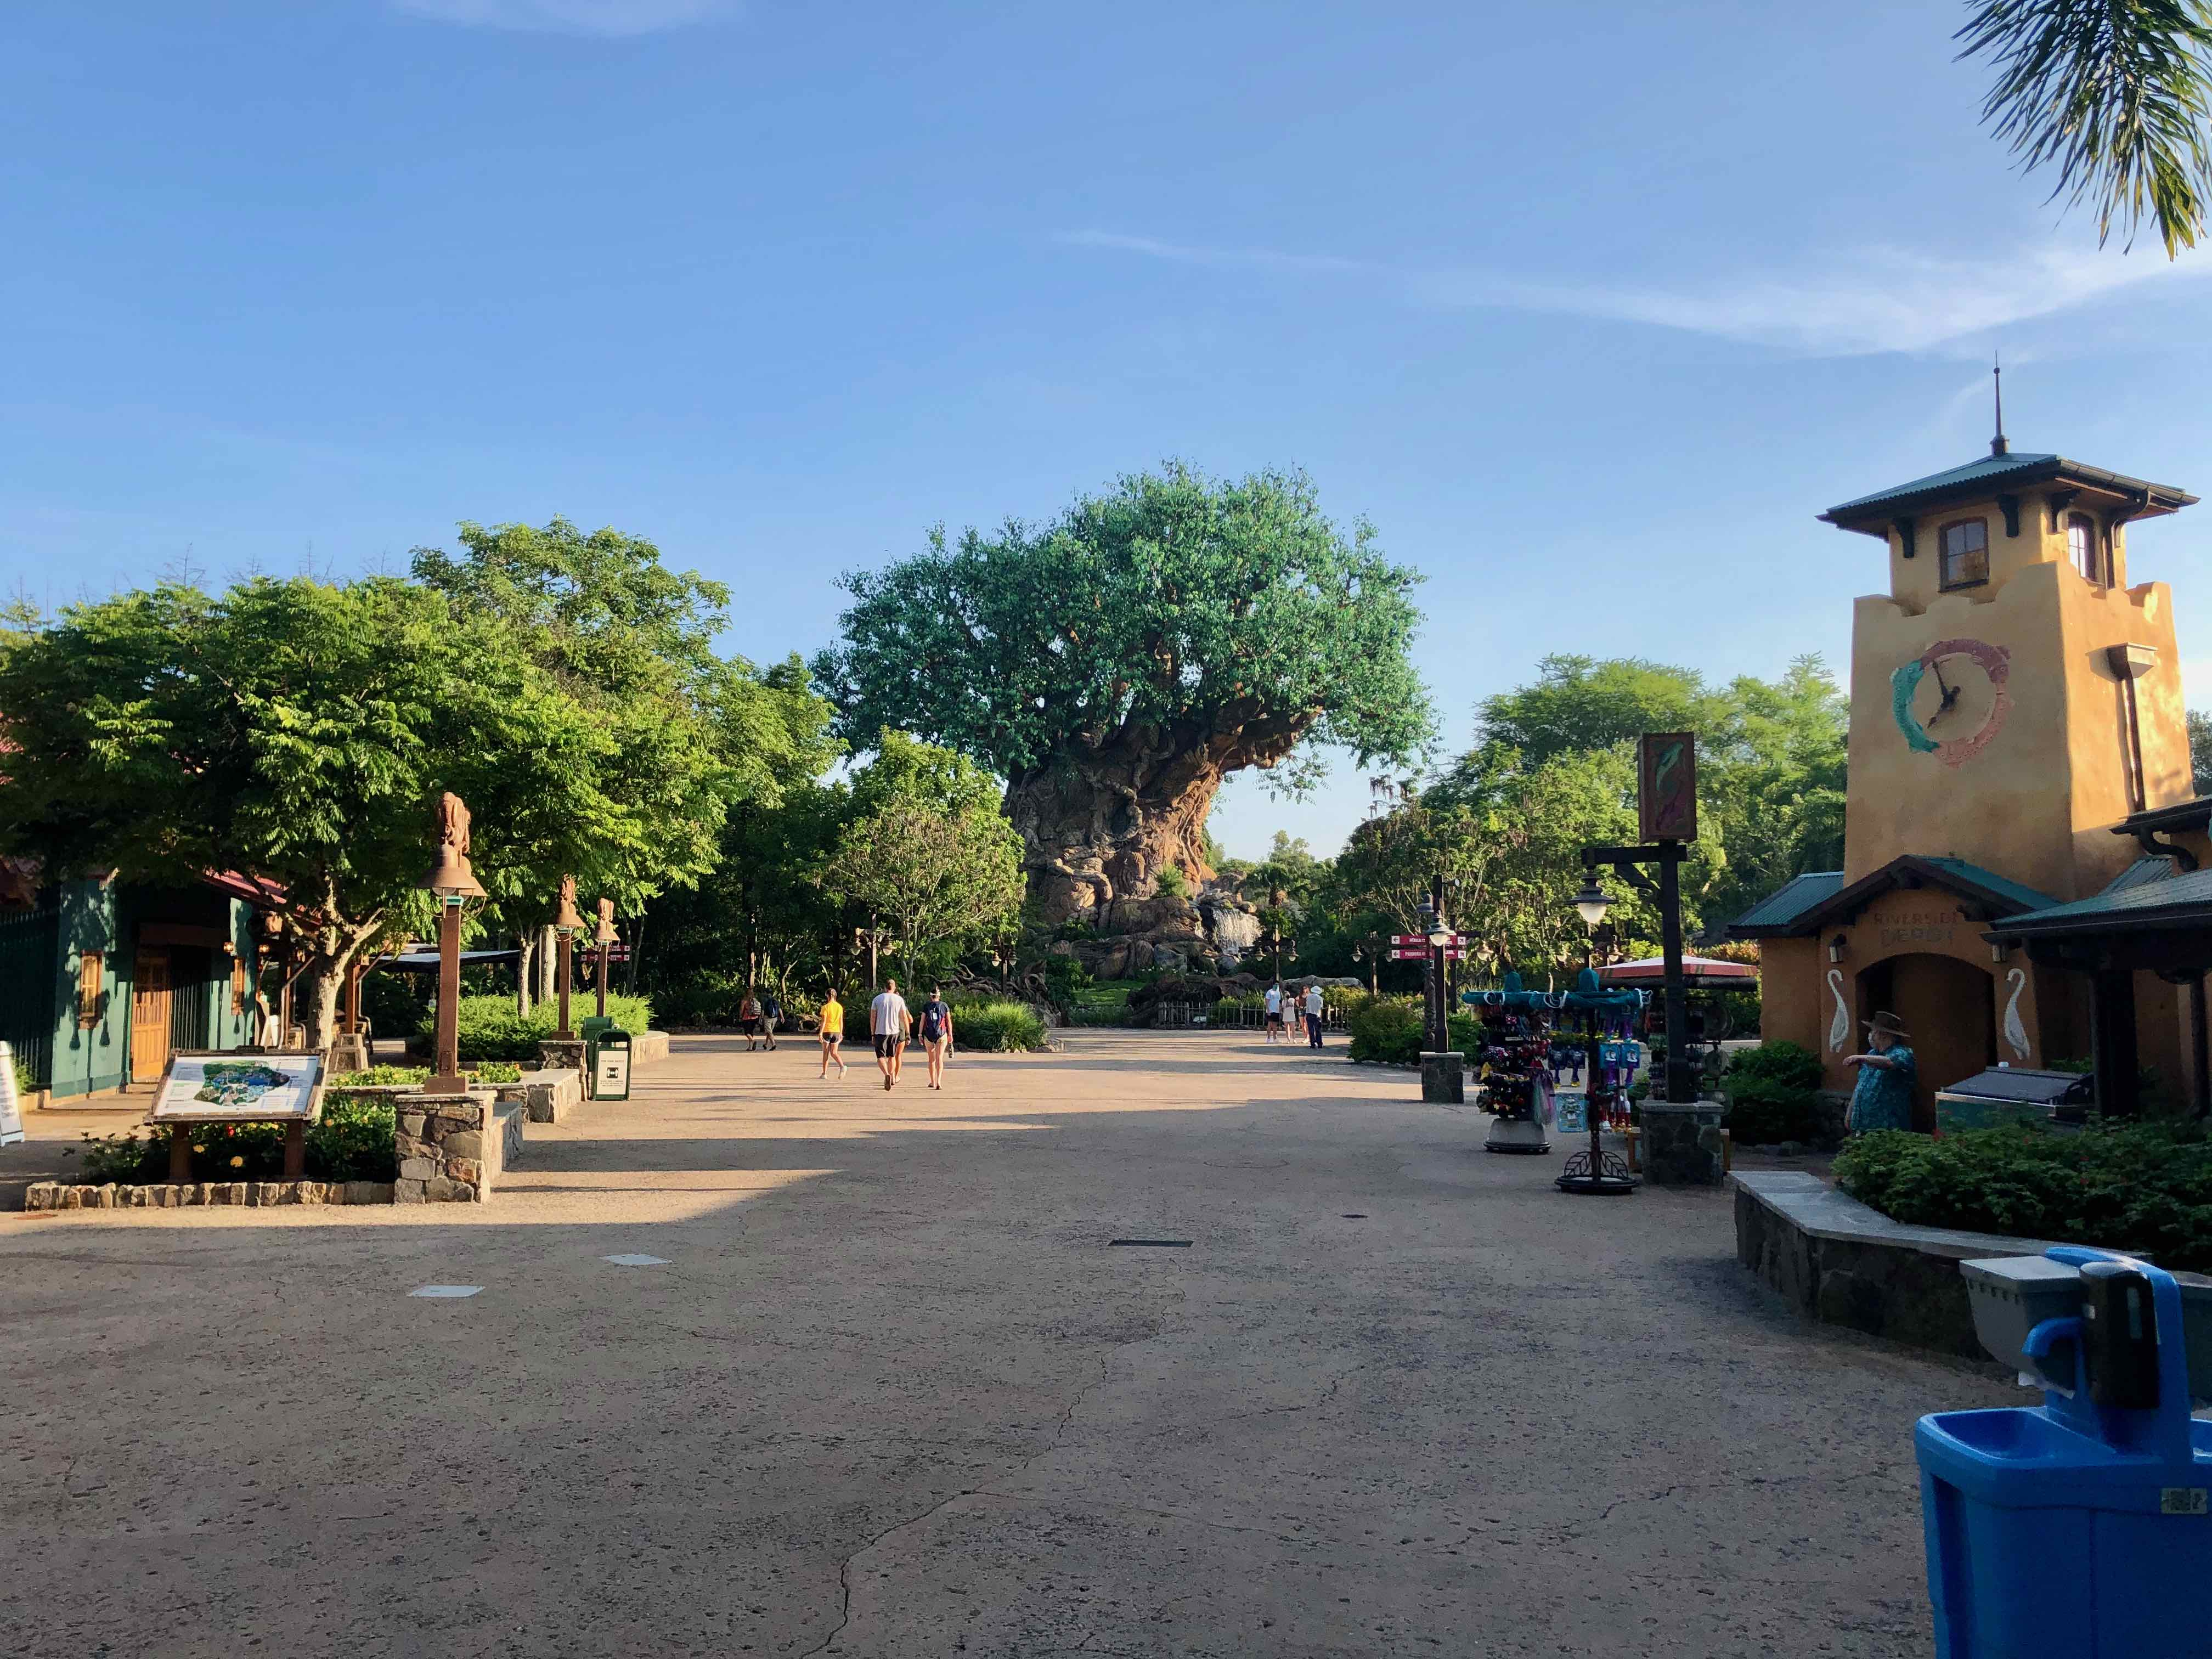 I Visited Disney World's Animal Kingdom after Reopening. Here's What I Saw.